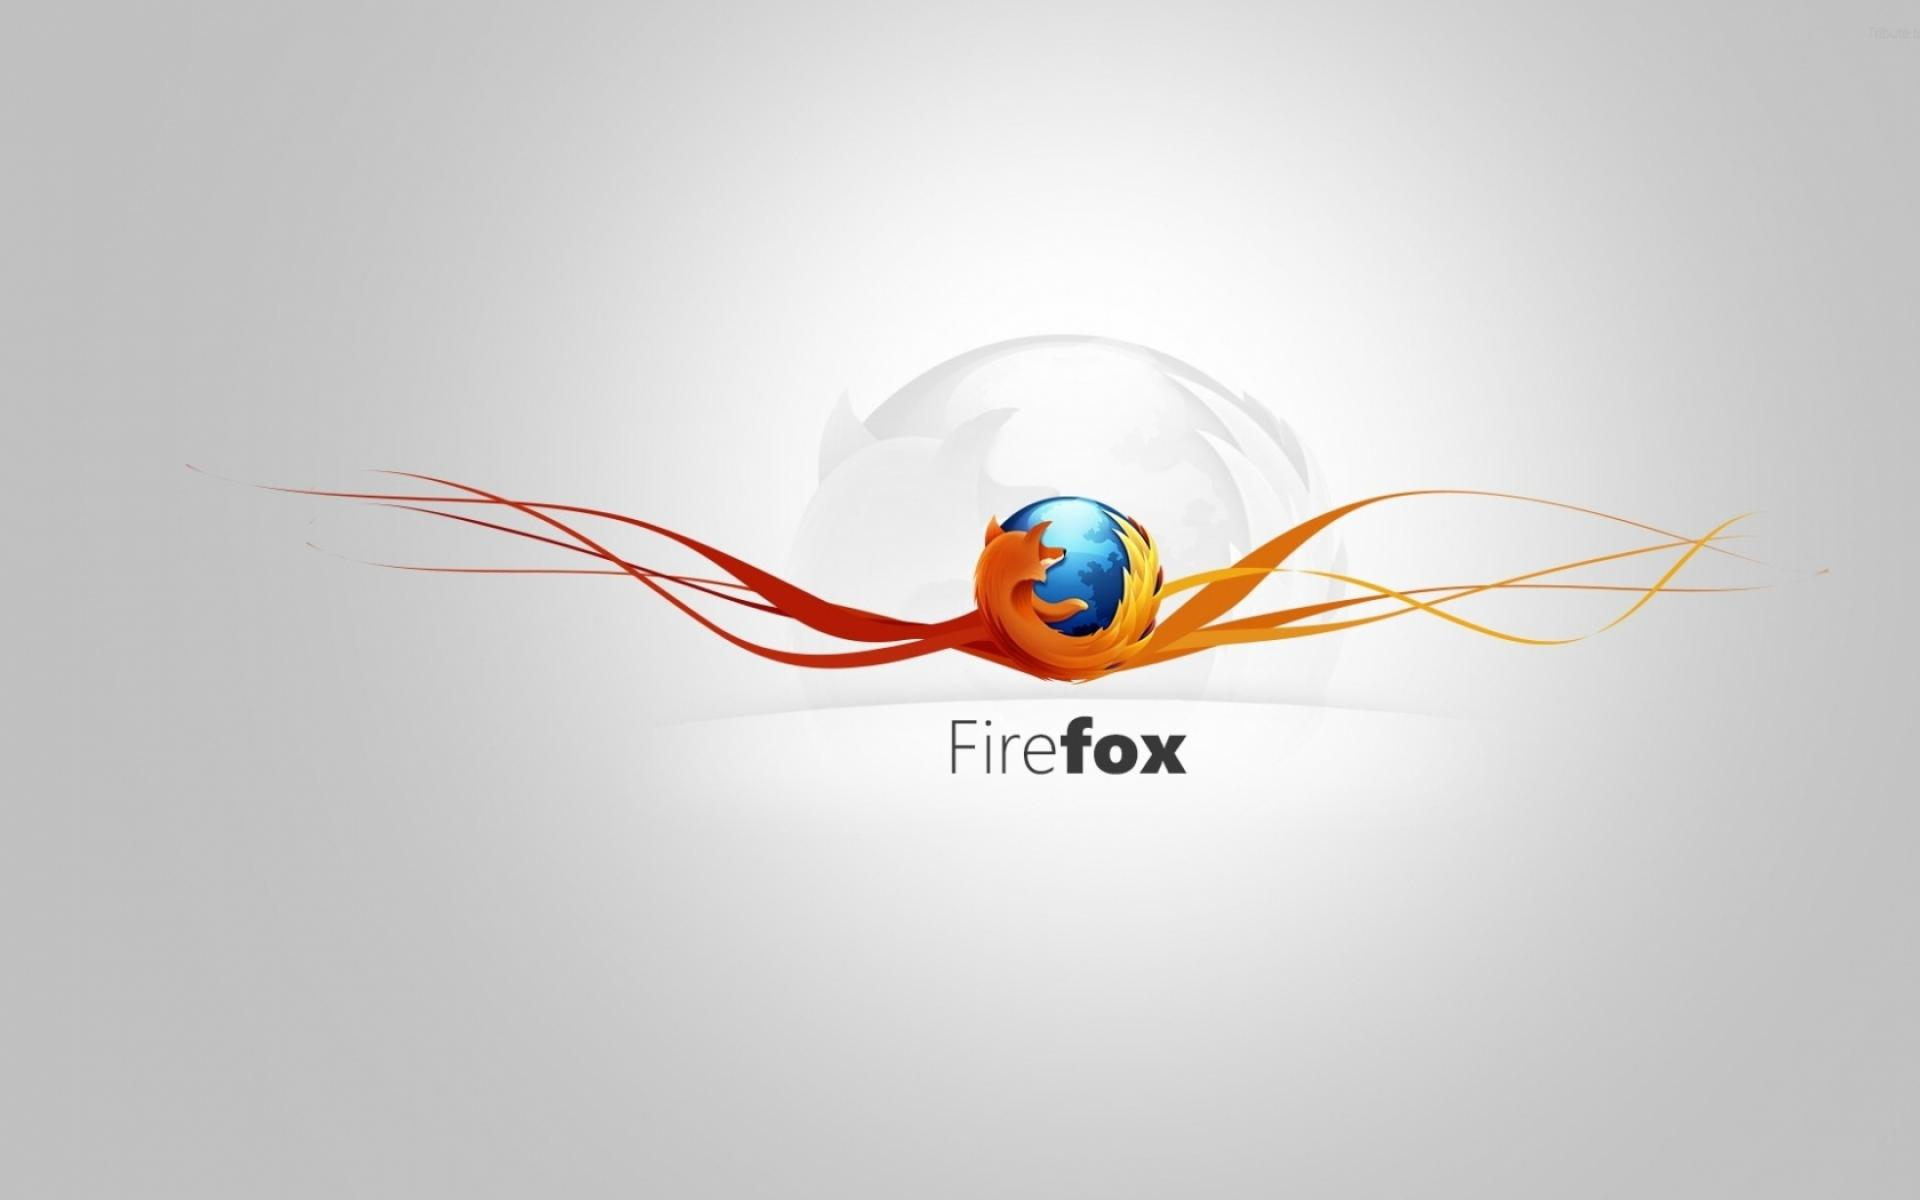 firefox wallpaper 6 1920x1200